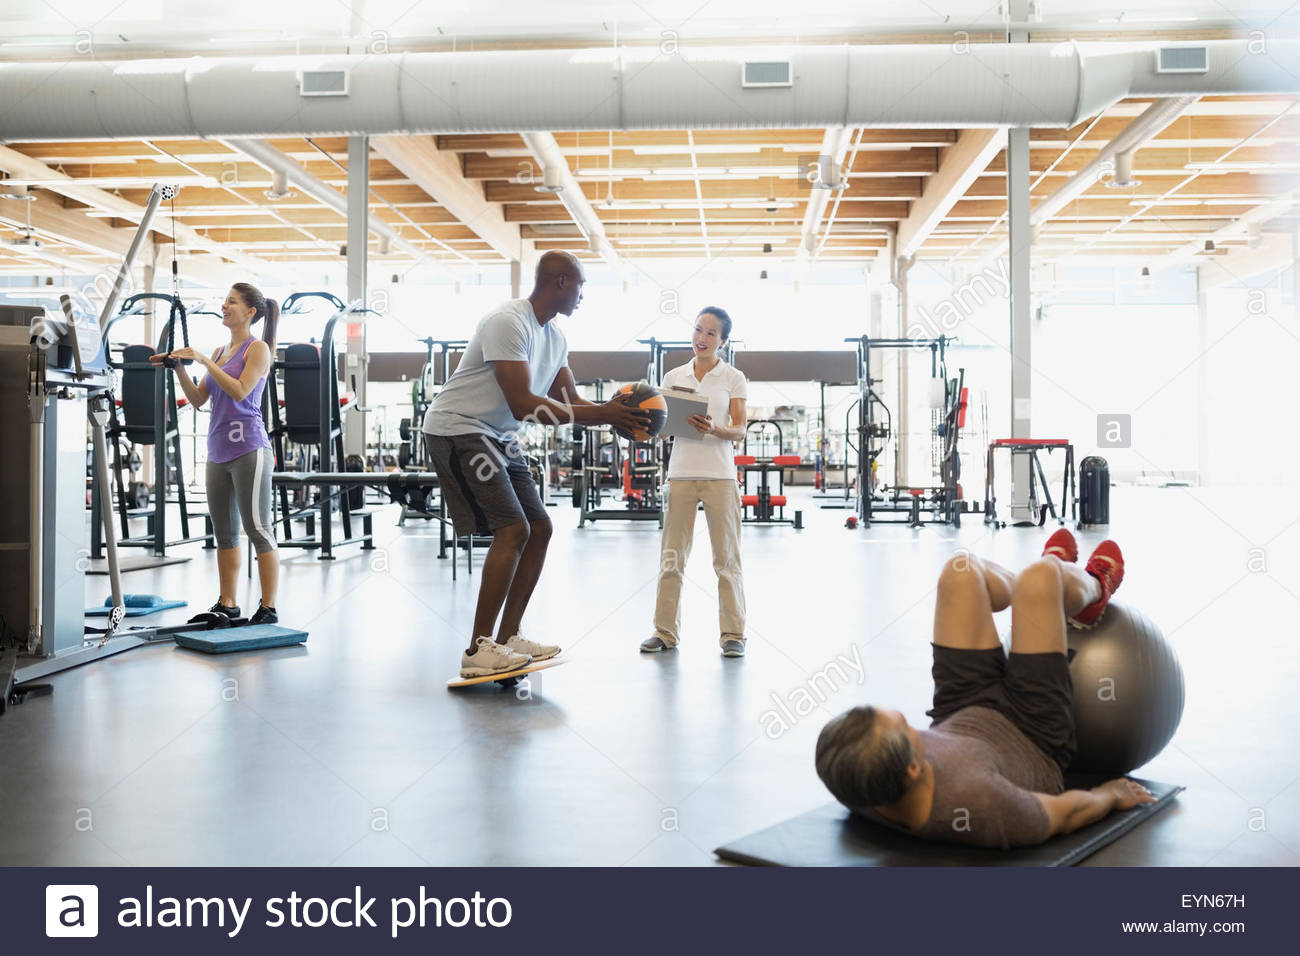 Physical therapist guiding patient with medicine ball gym - Stock Image